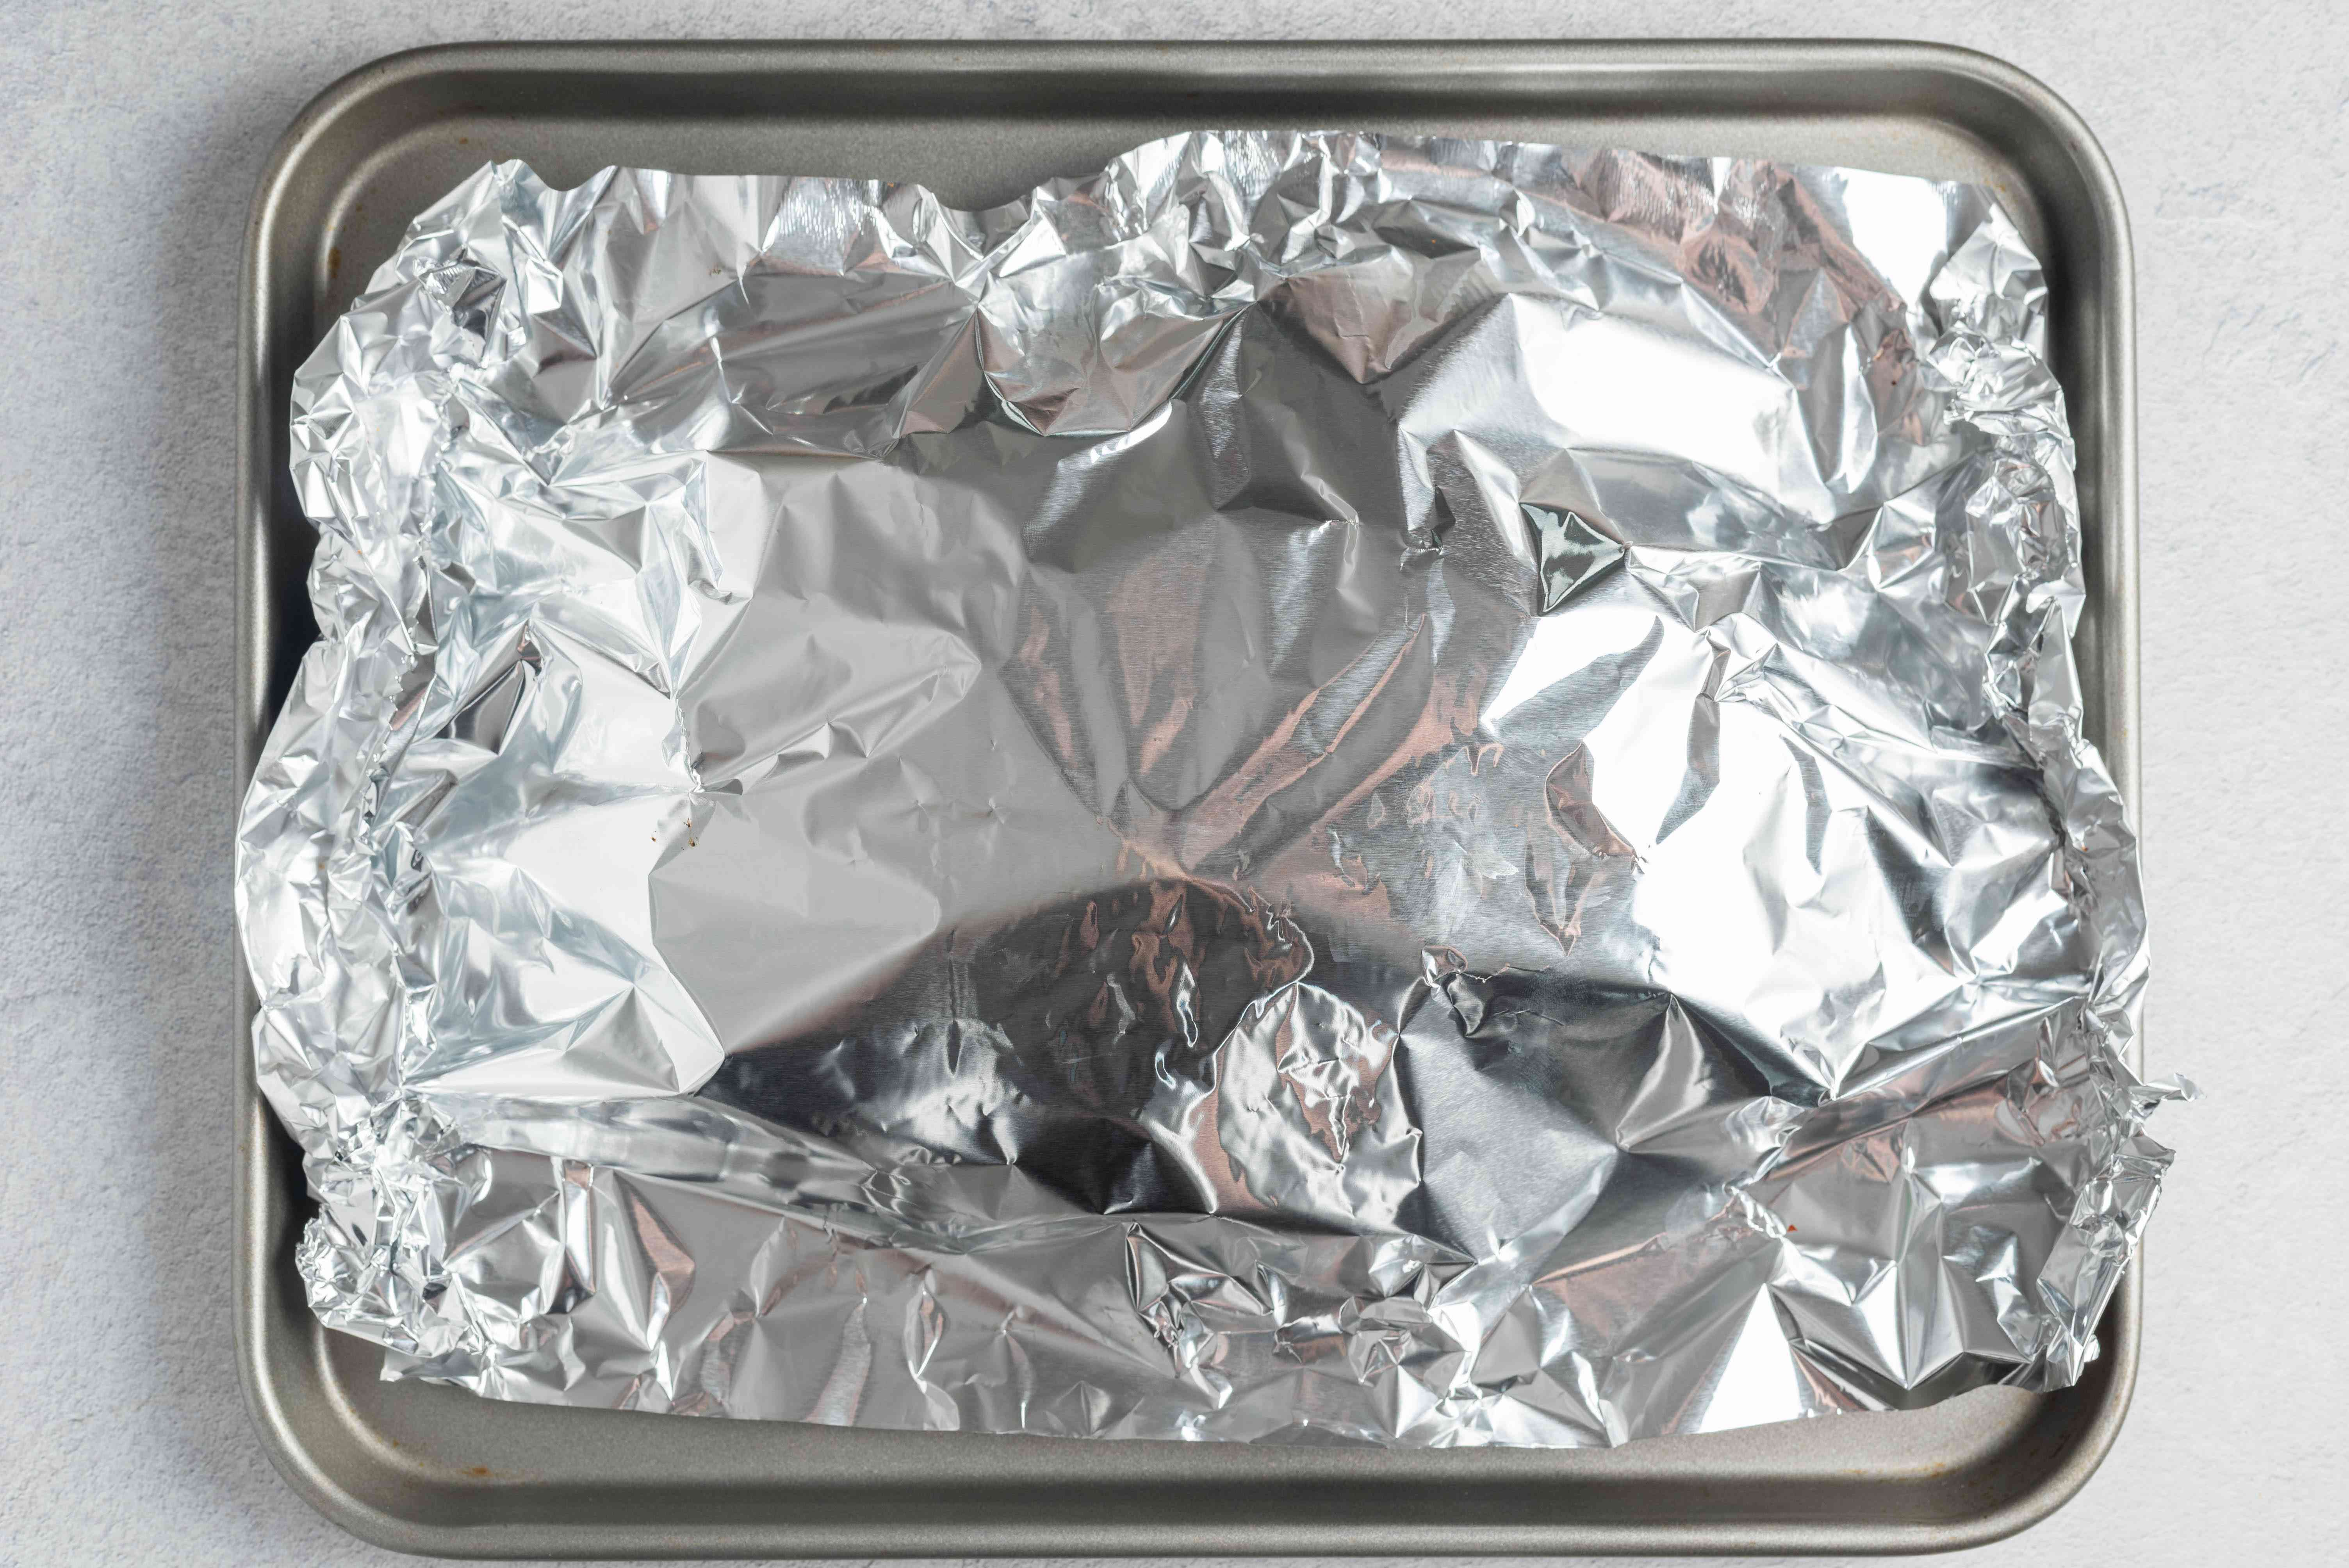 Cover in tinfoil